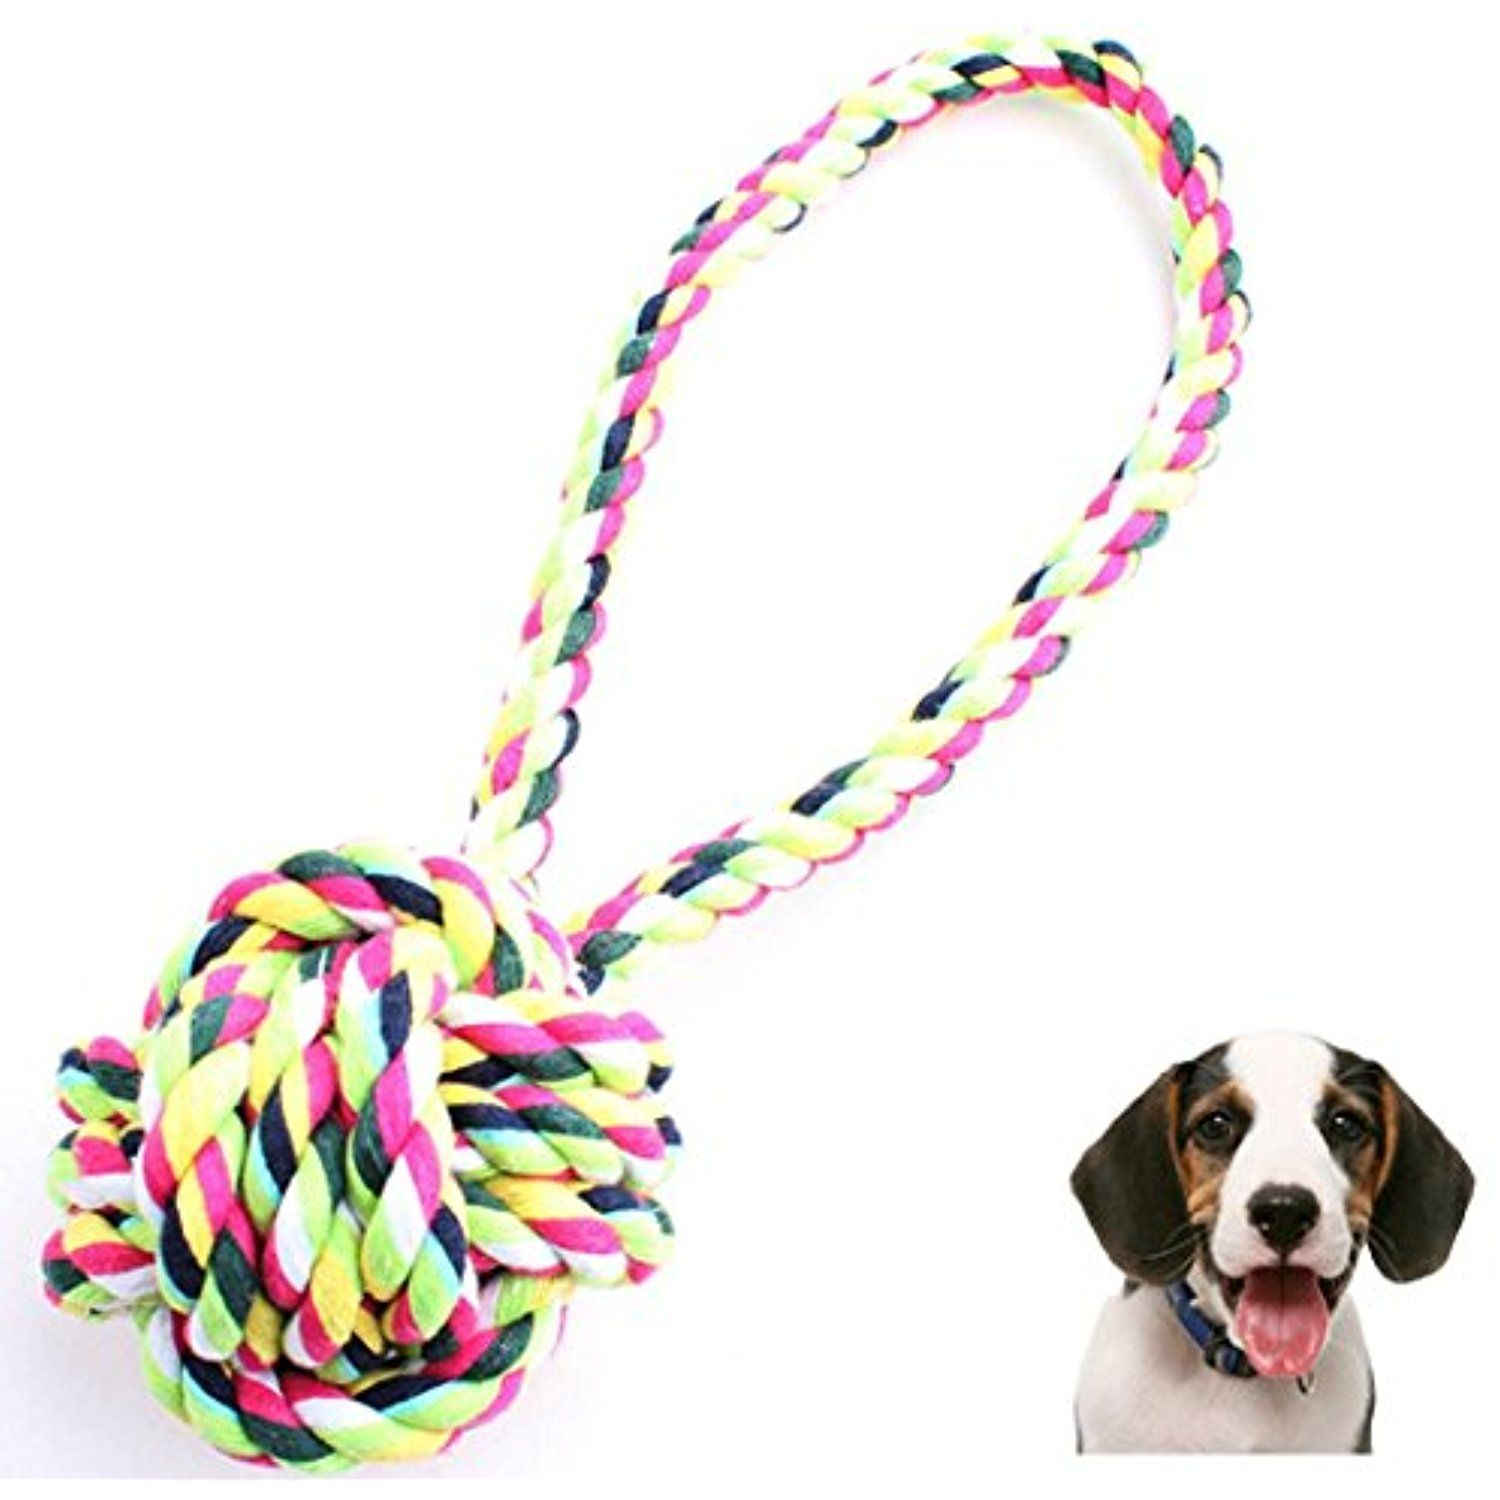 Kim88 Dog Throw Tug Pull Chew Toy Ball Rope New Dog Chew Toy Rope